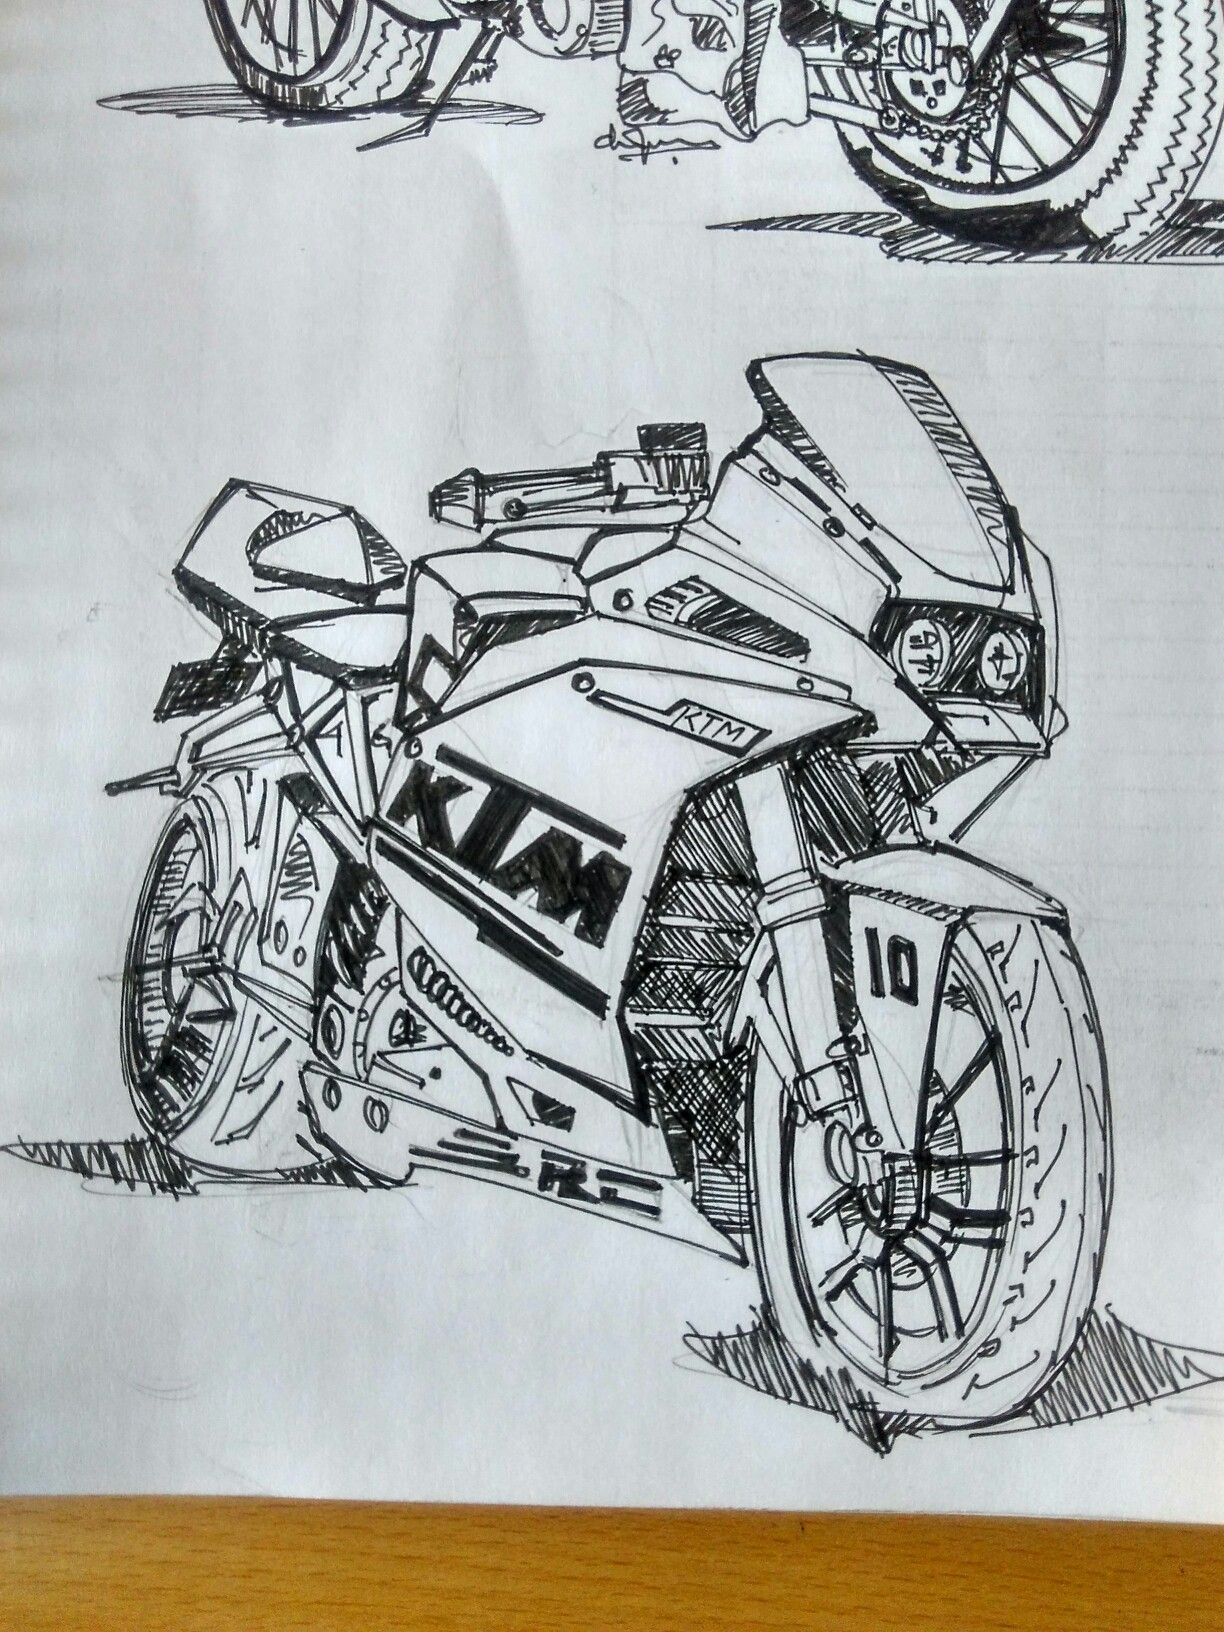 Ktm Rc Car Sketch Ktm Rc Sketches